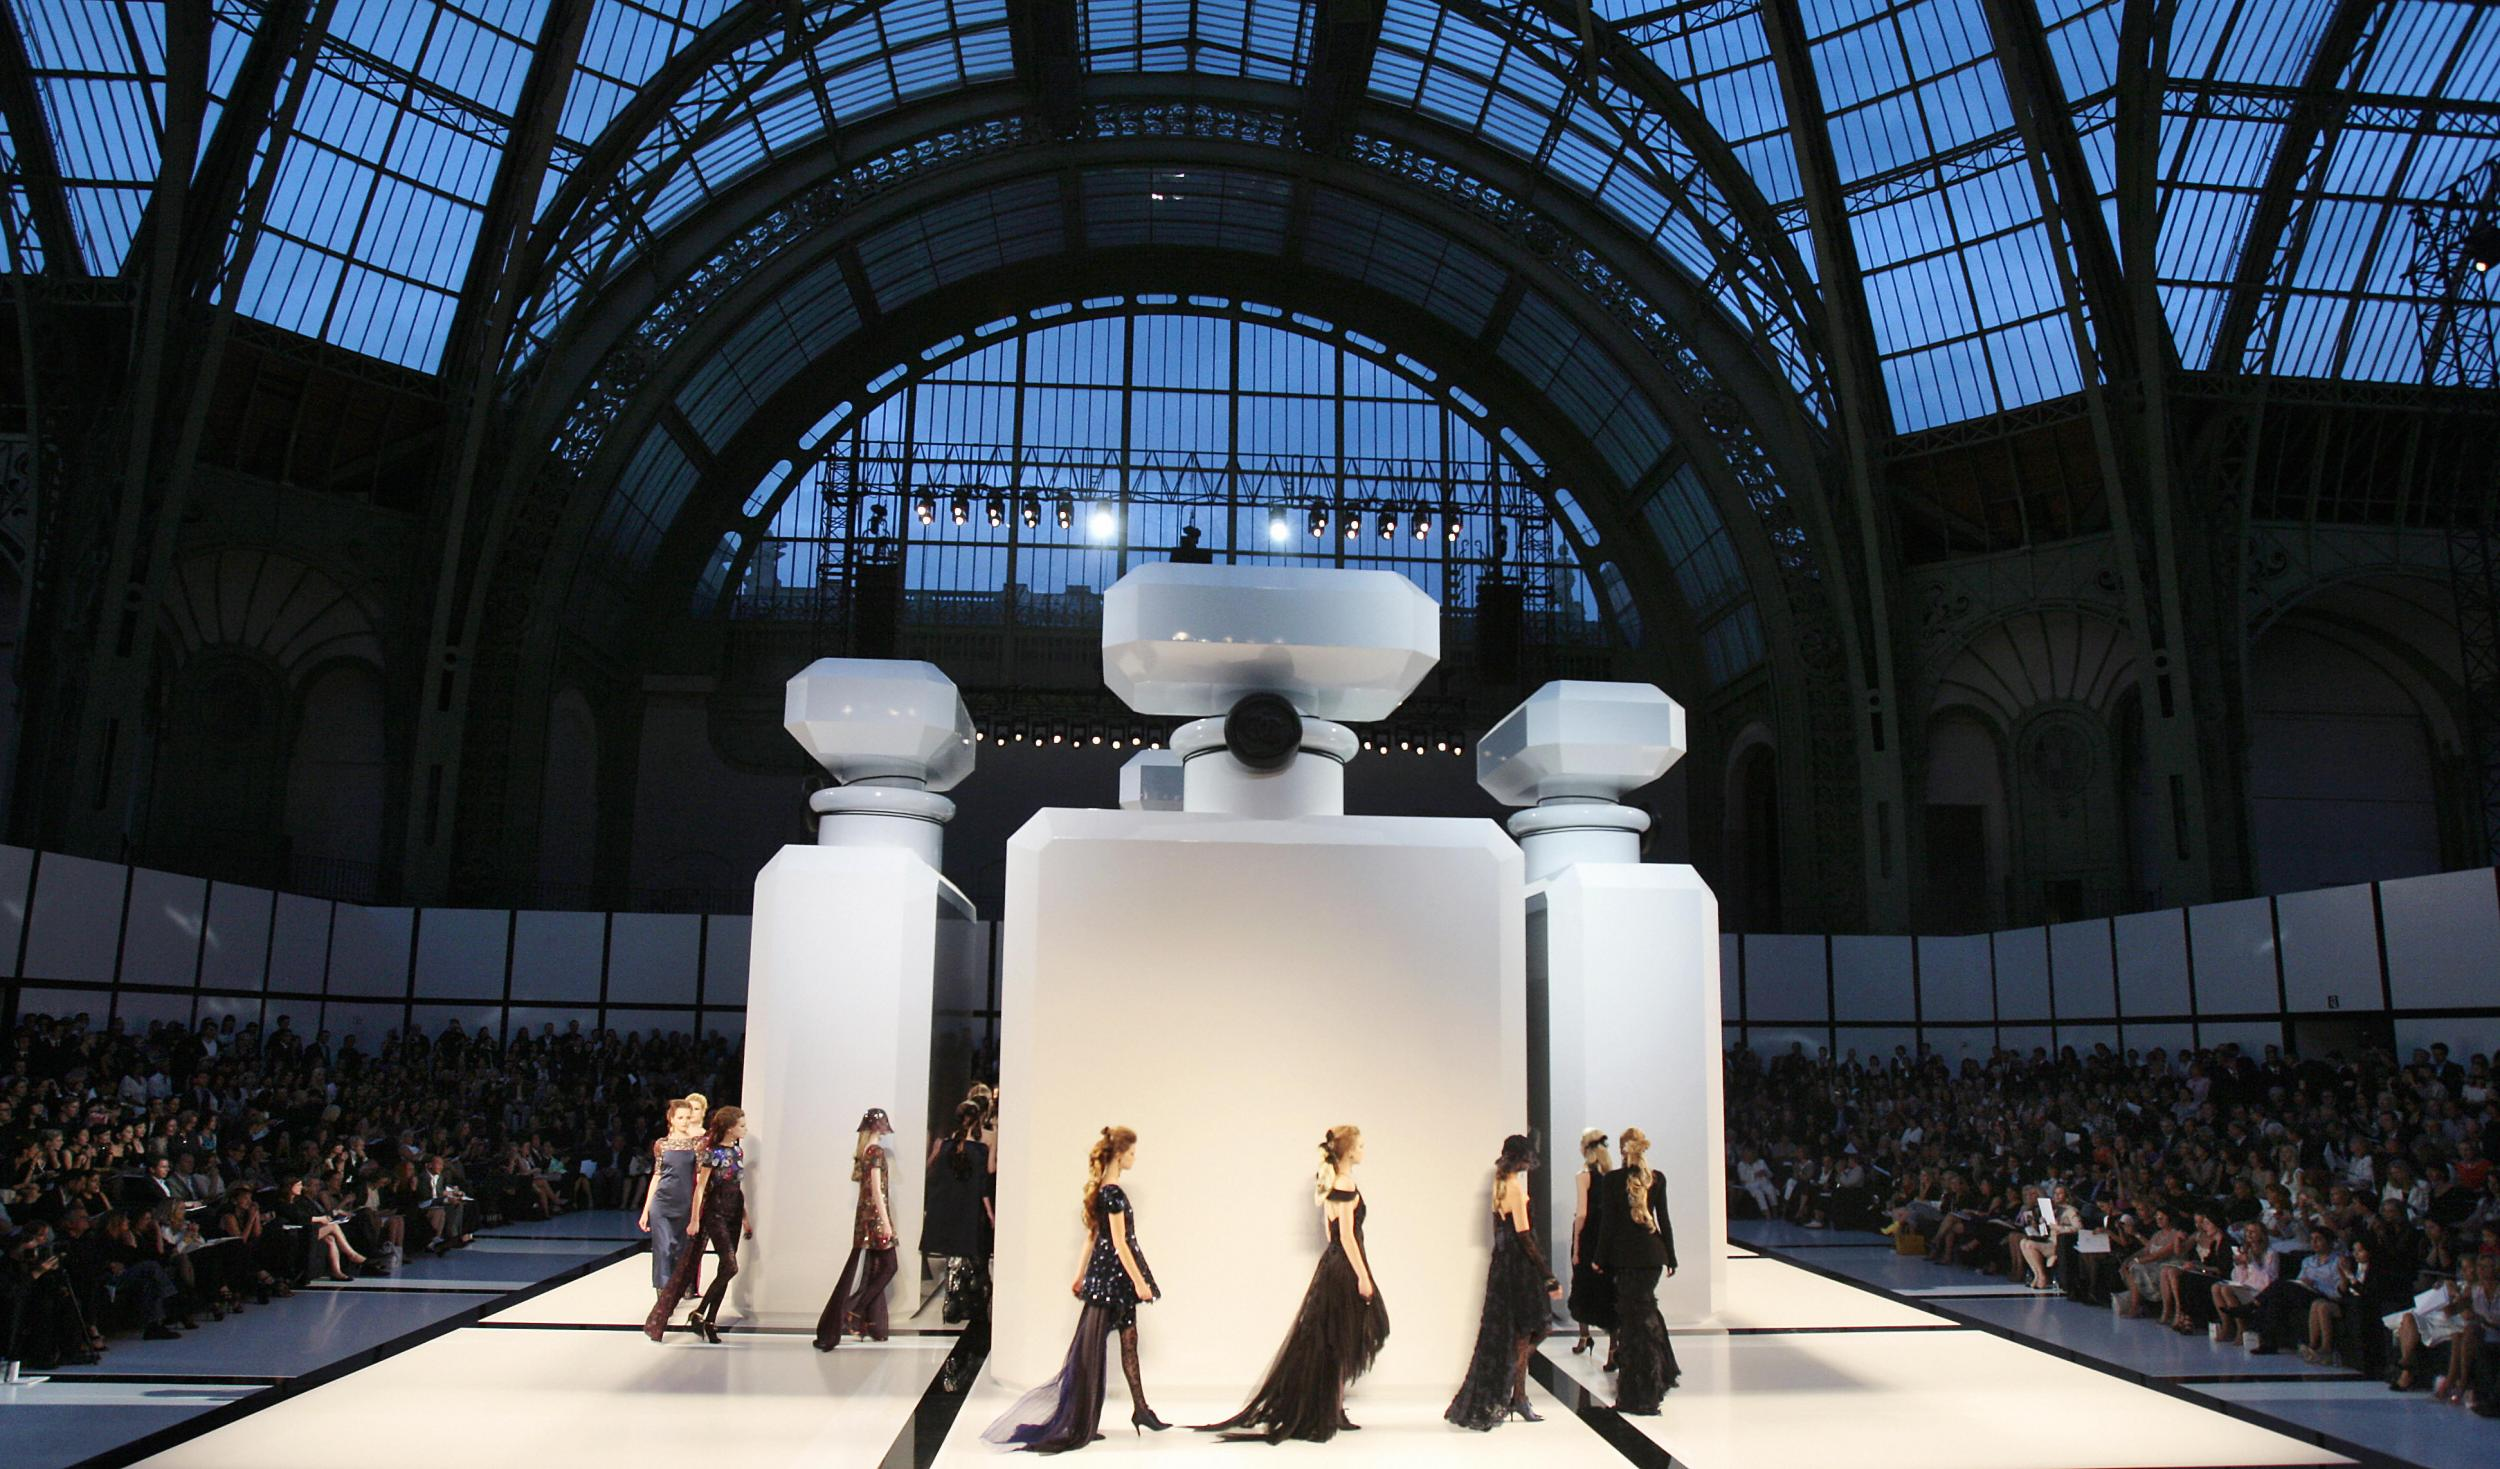 Karl Lagerfeld: Chanel's most memorable runway sets curated